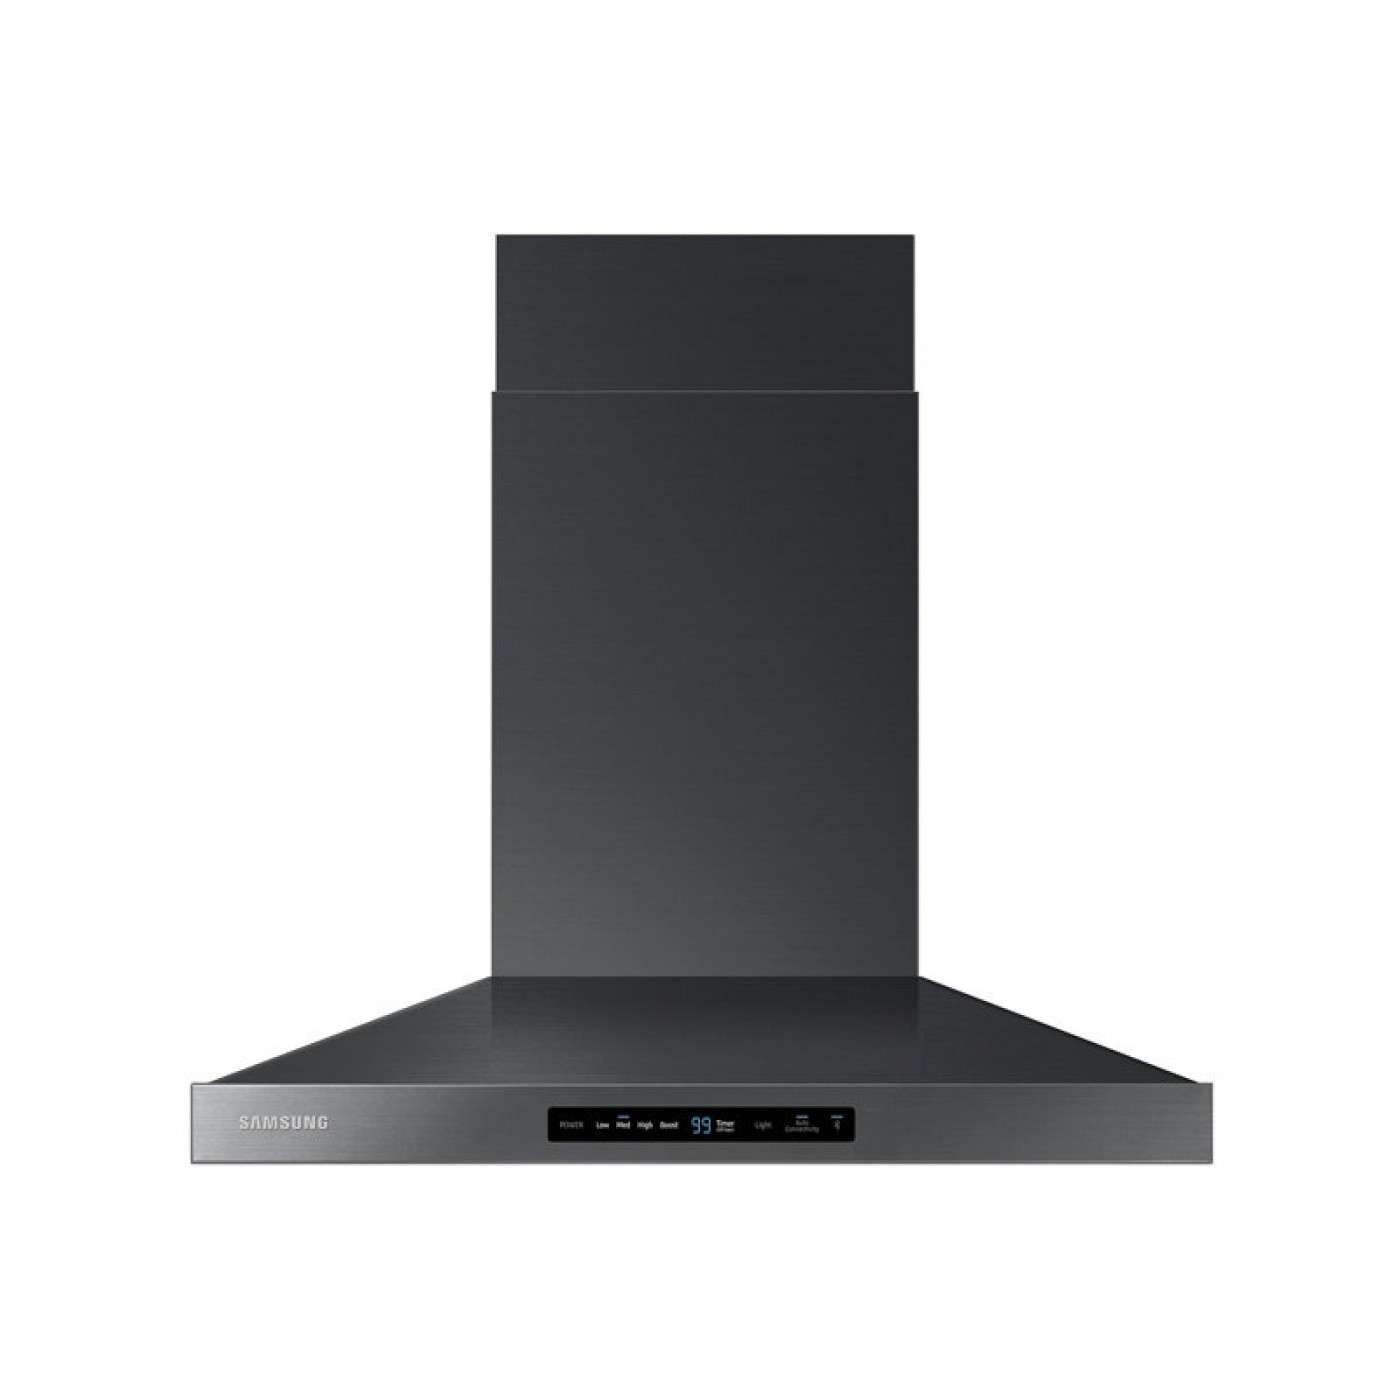 "30"" Black Stainless Steel Chimney Style Wall Mount Range Hood 600"